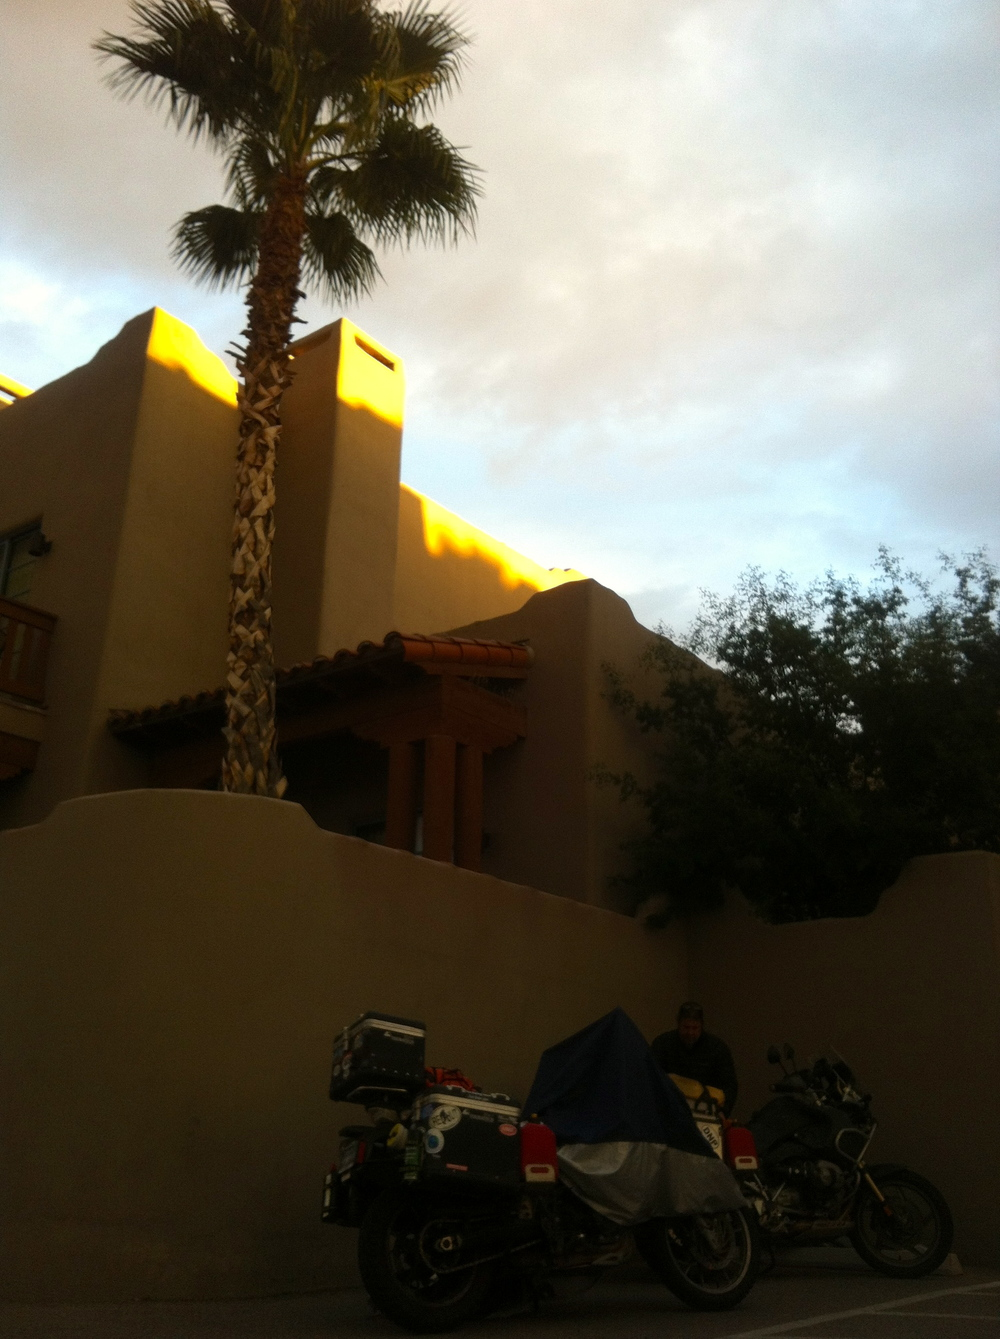 A cool Expedia score in Tucson to recover and fix the bikes before heading over the boarder.